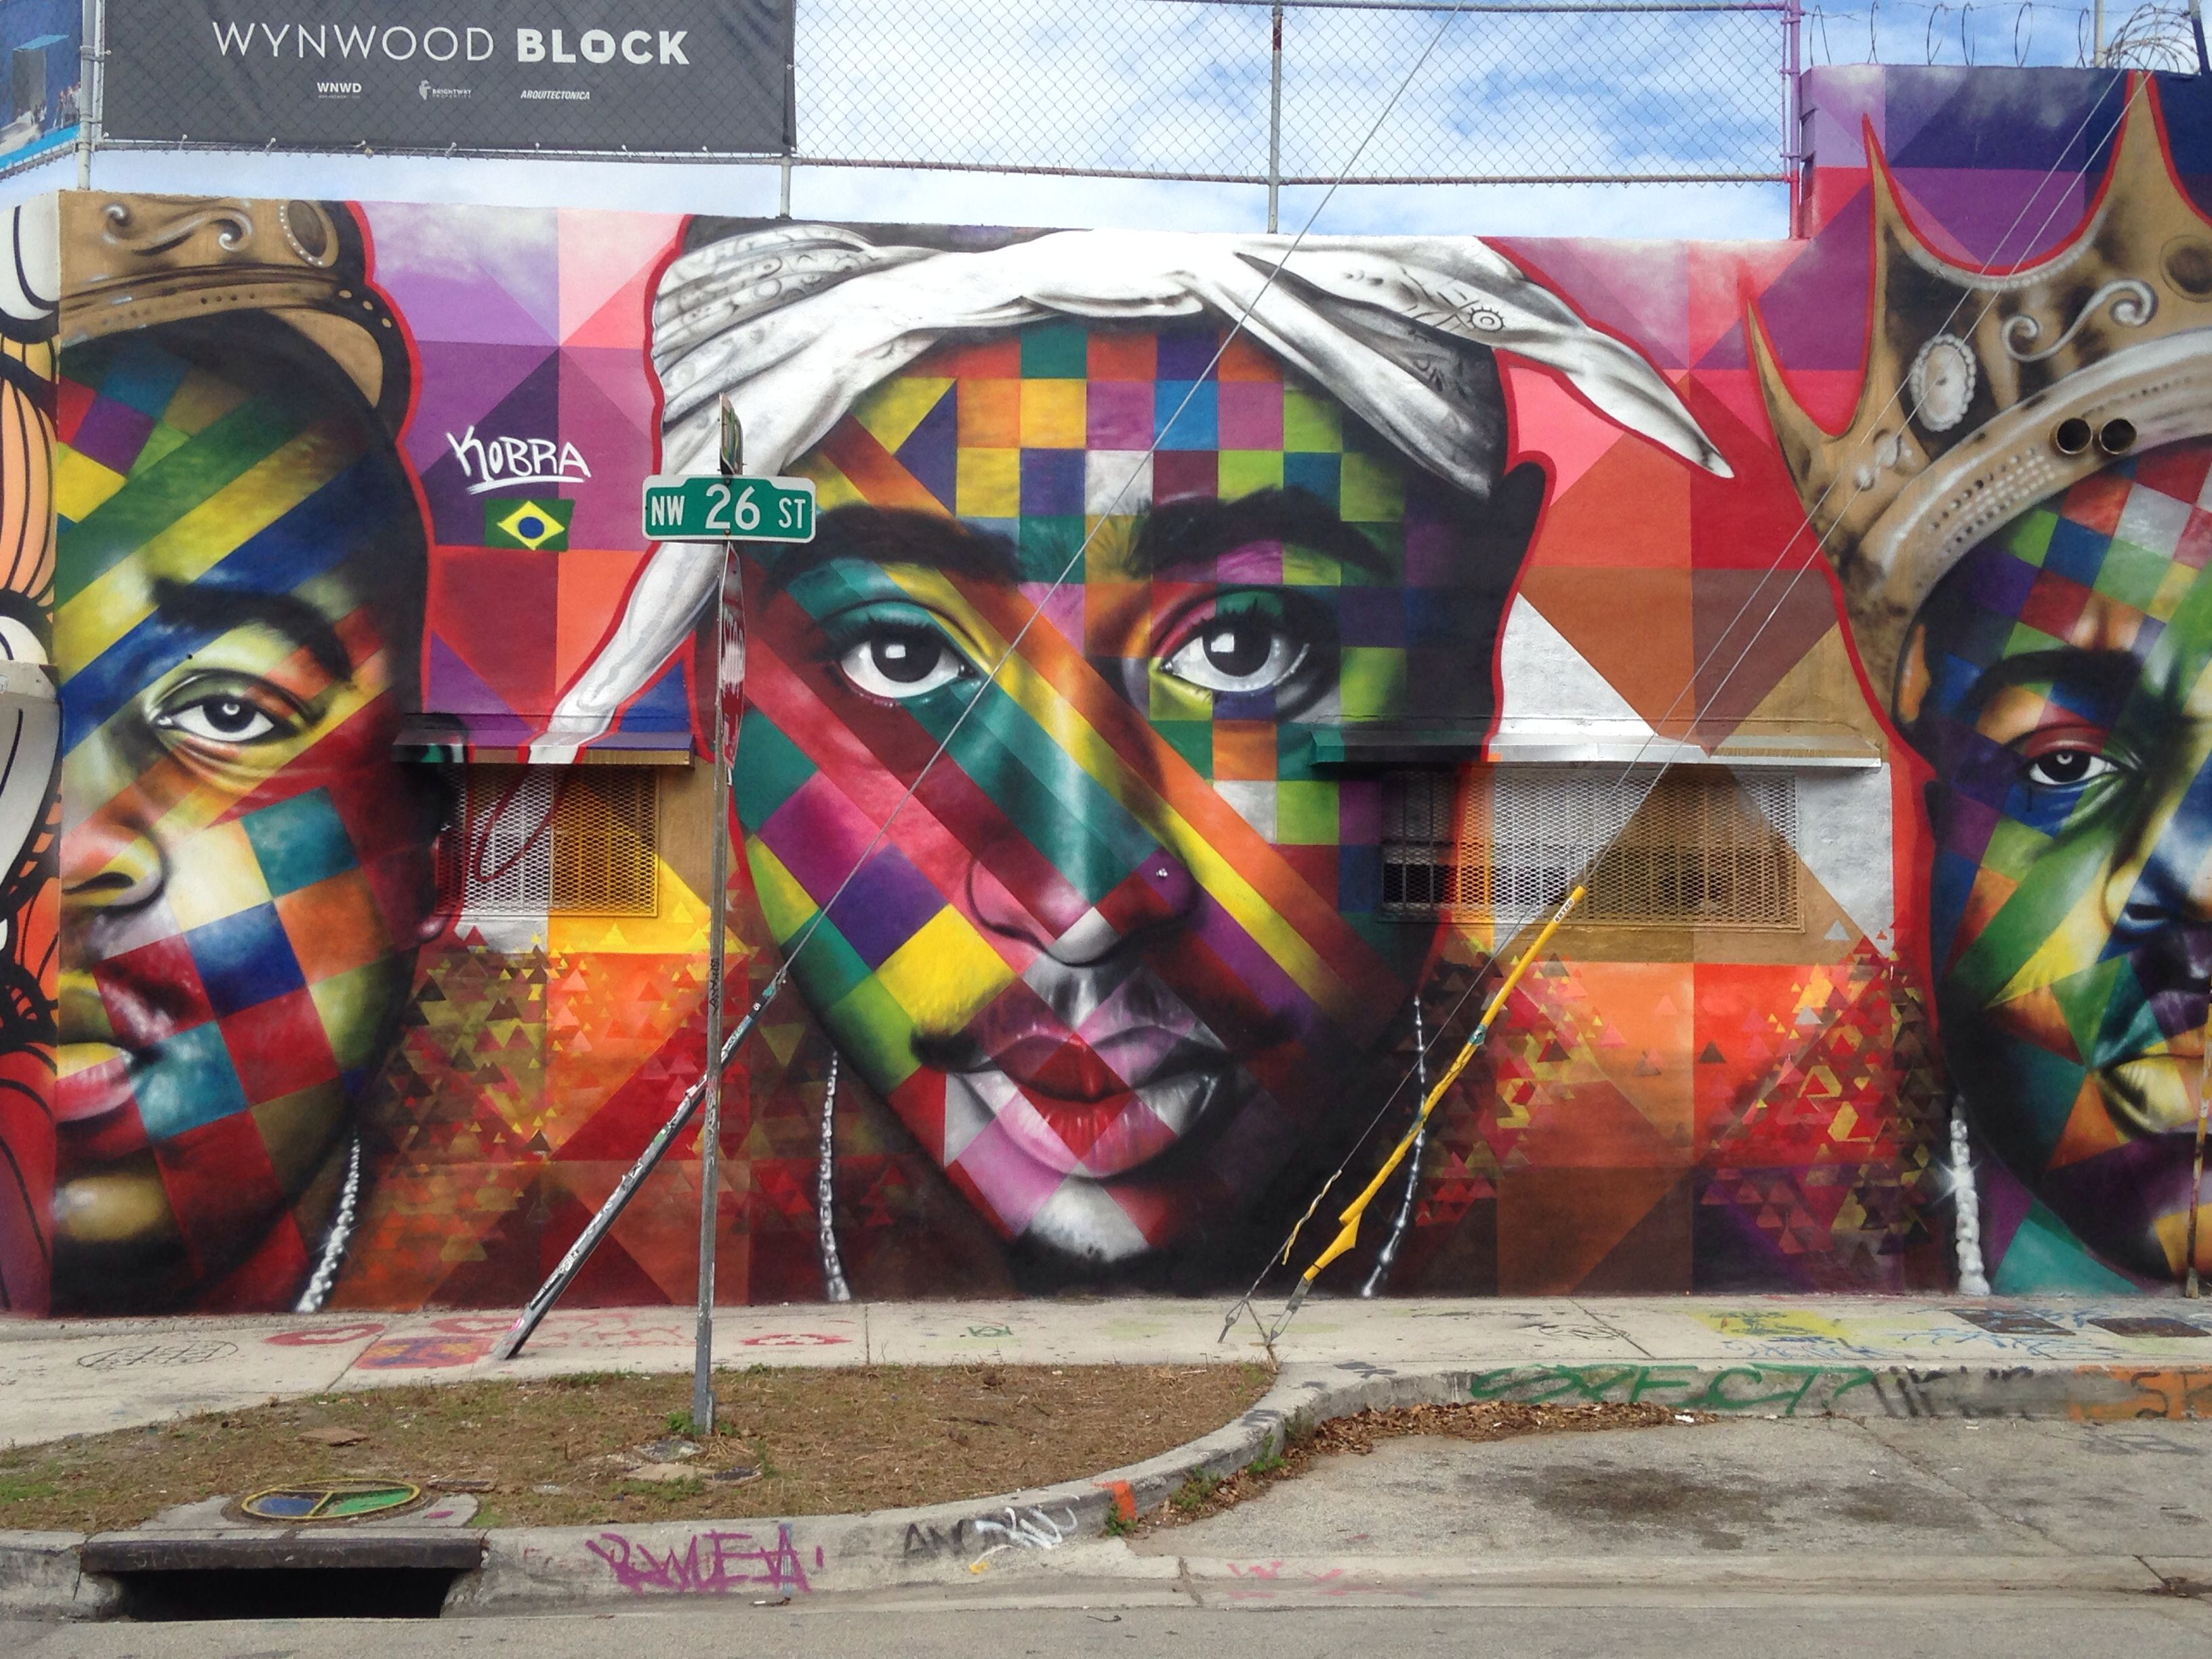 tupac miami design district graffiti art art pinterest tupac miami design district graffiti art